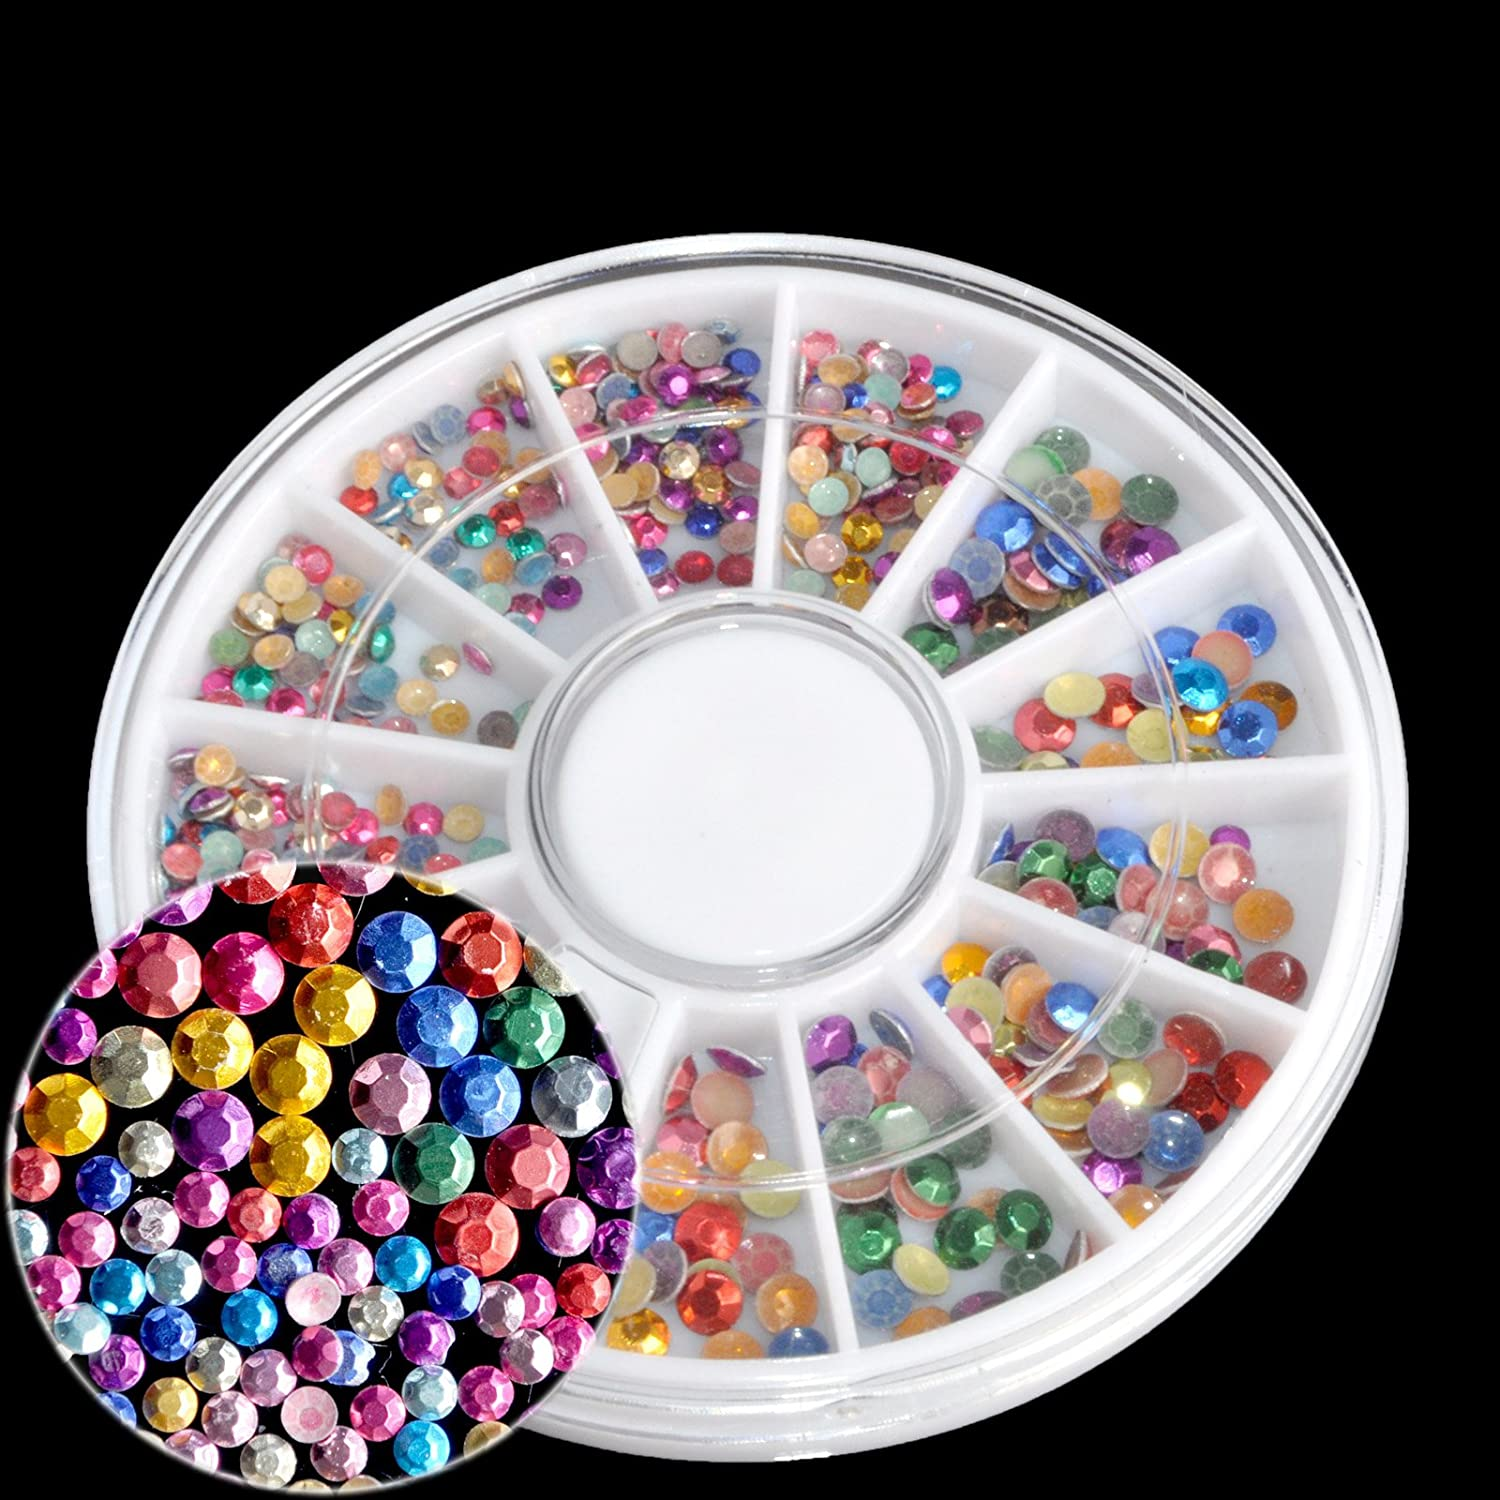 Mix Size AB Pearls Nail Art Decoration Holo Gems Flat Back Round White Nail Design Beads Wheel N44 EchiQ